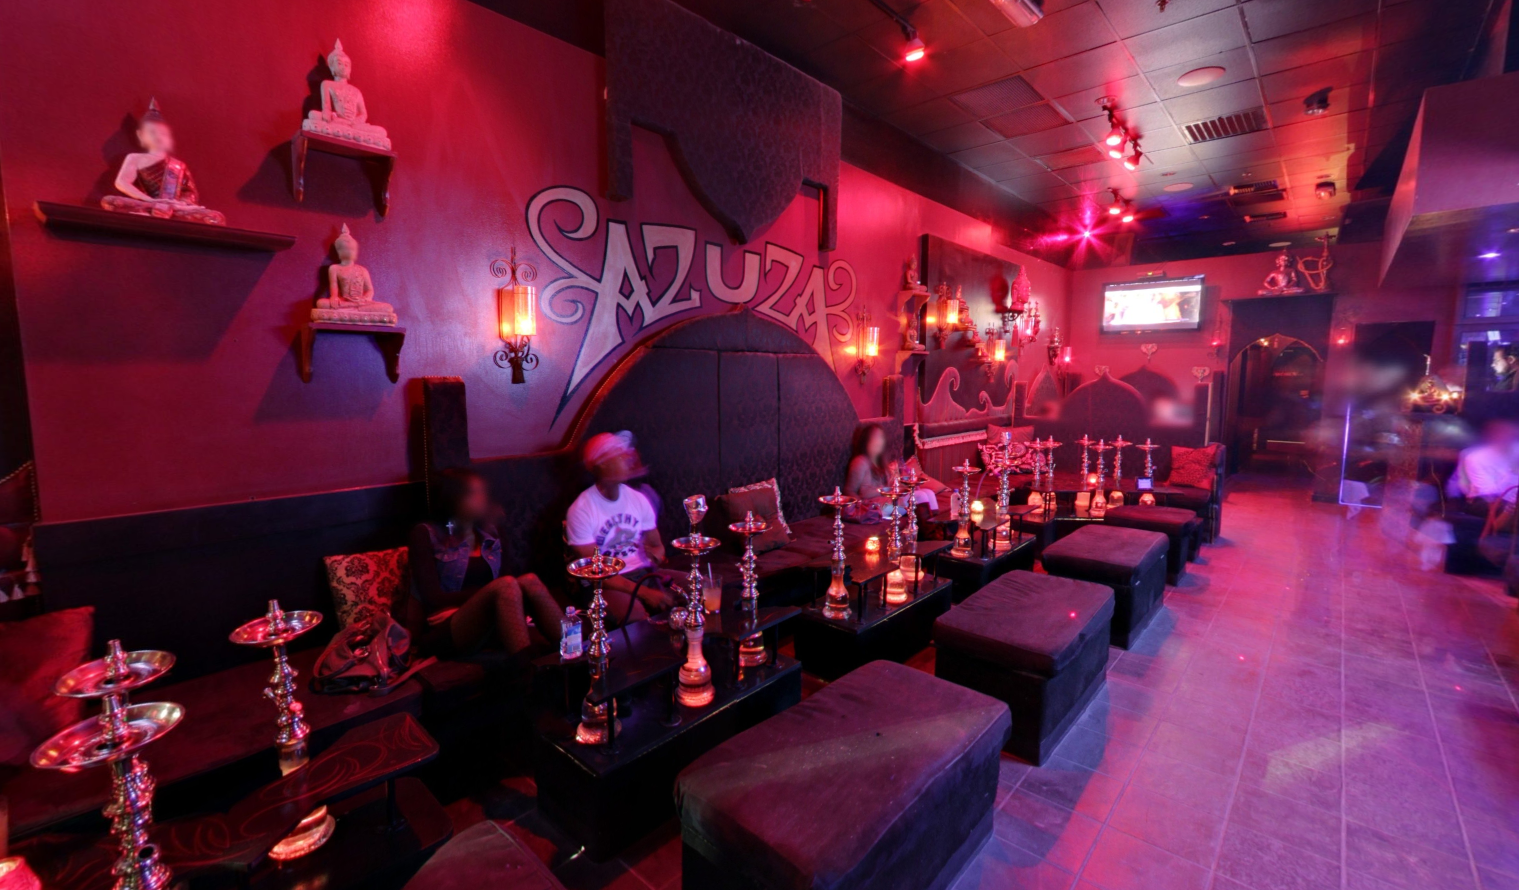 Dark & Egyptian inspired lounge with a couple of patrons inside a hookah bar in Las Vegas - Azuza Hookah Lounge & Cafe